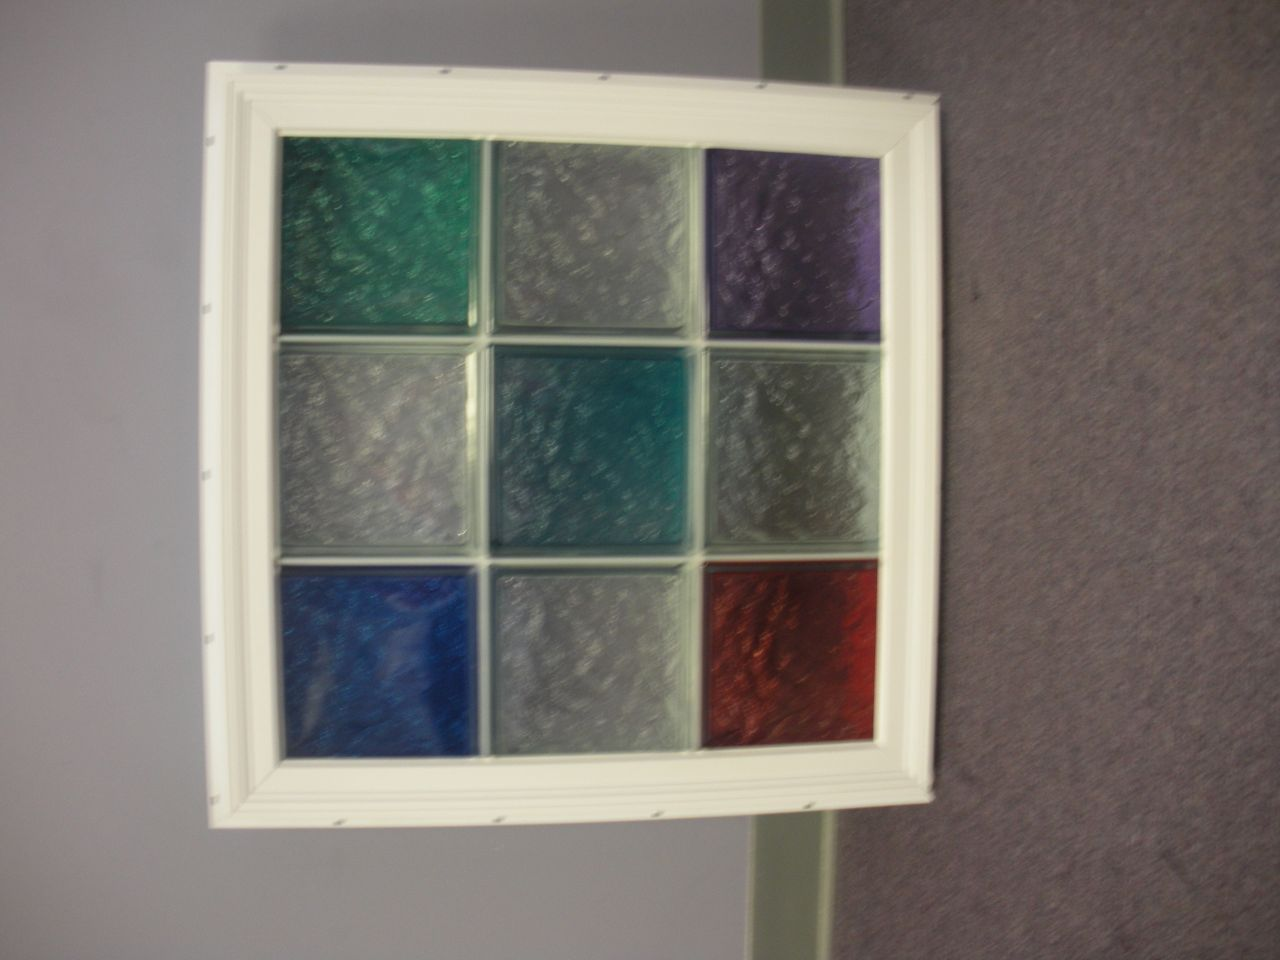 Vinyl framed glass block window for bathrooms kitchens for Glass block options